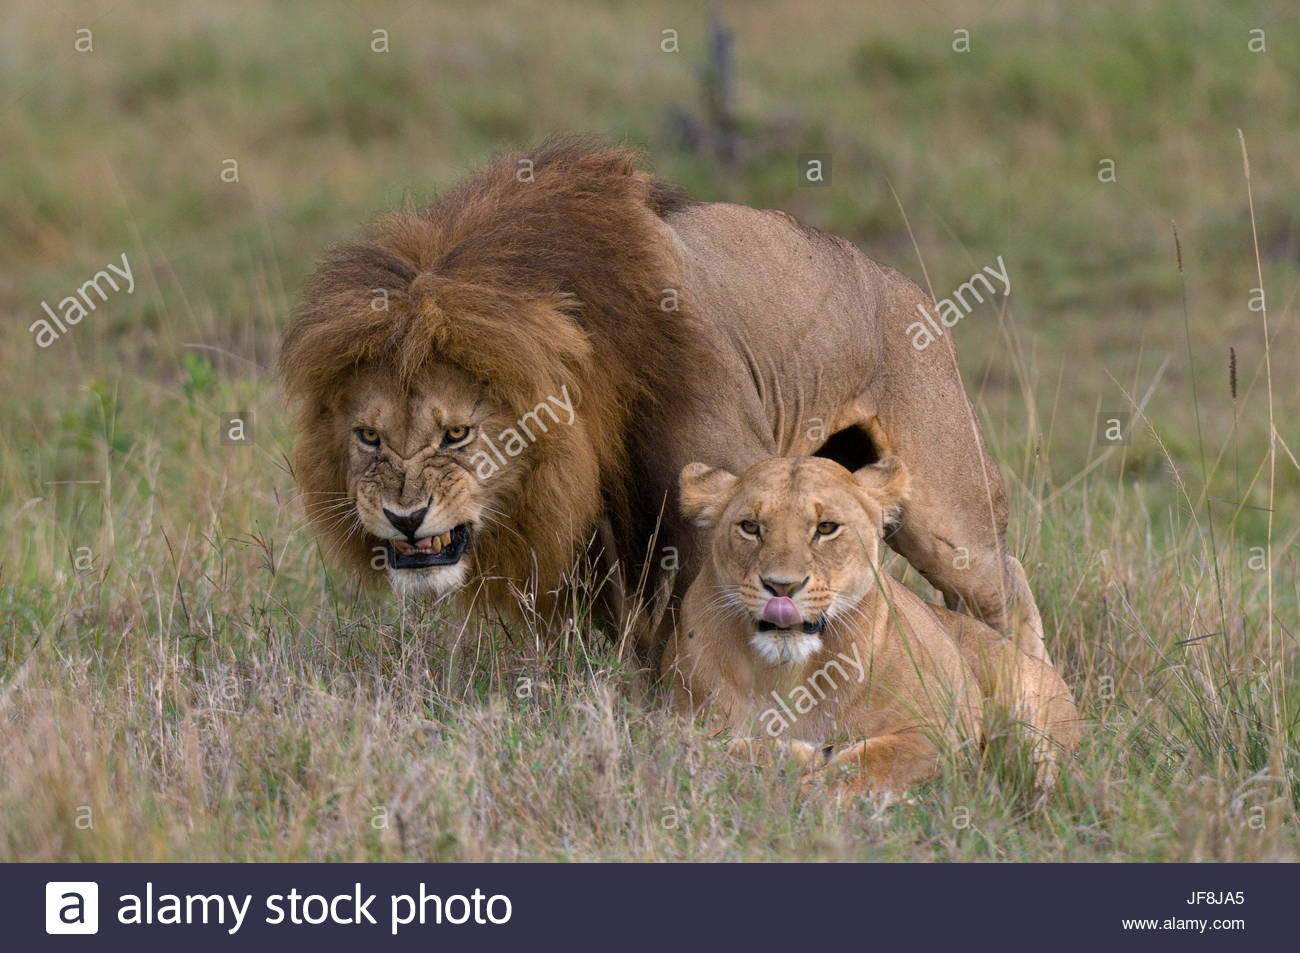 A male lion, Panthera leo, snarls as he mates with a submissive female below. - Stock Image